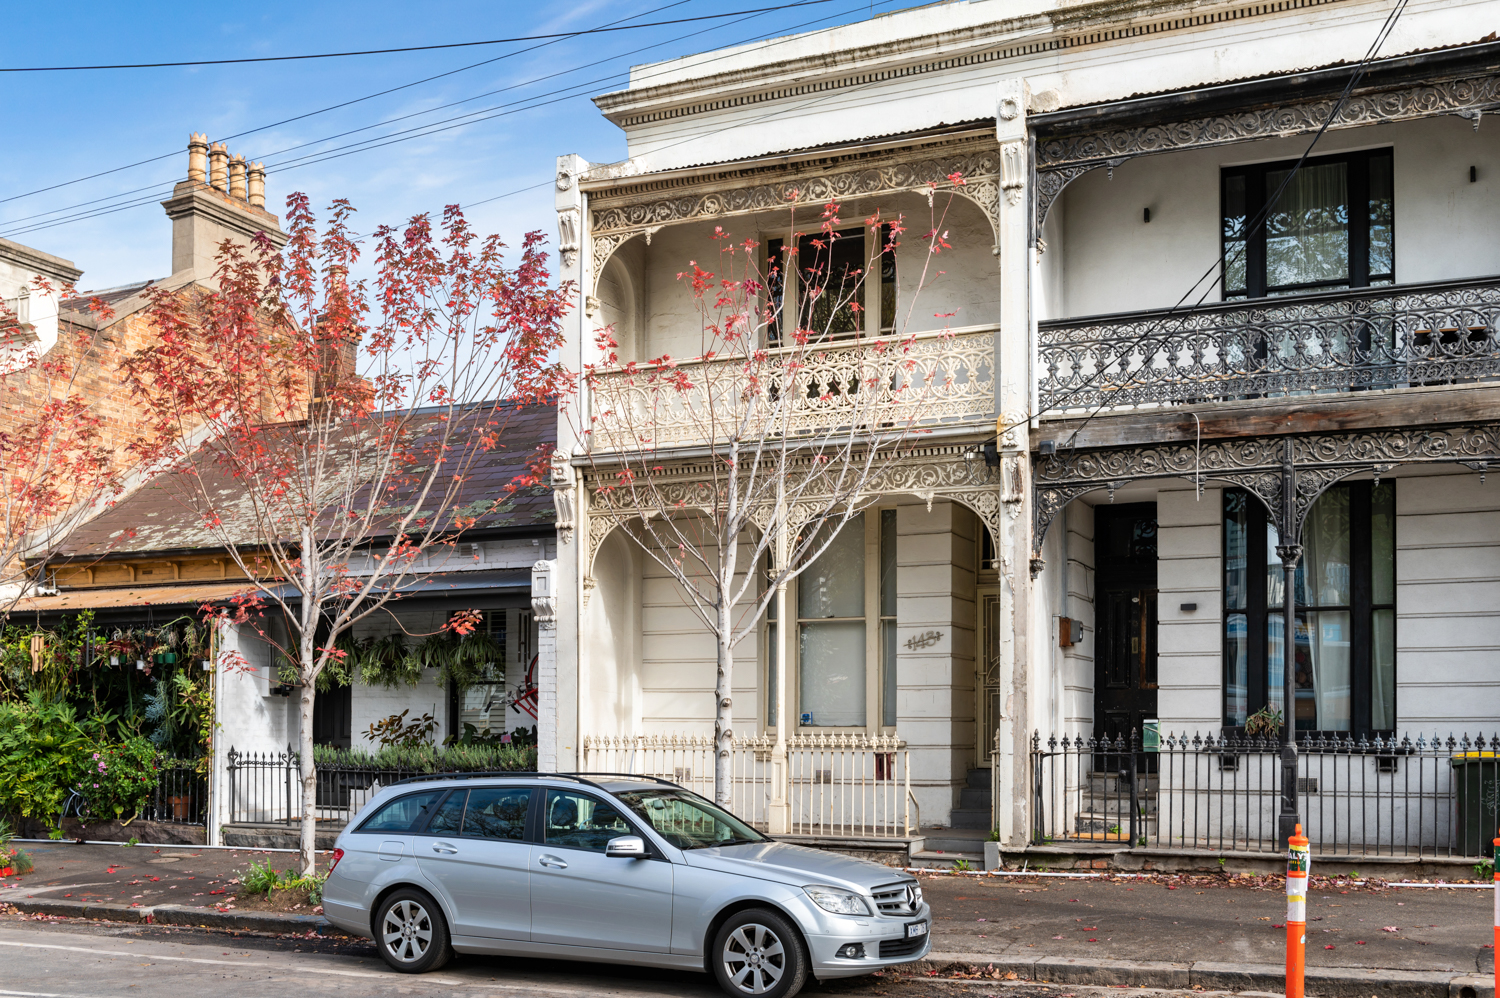 143-peel-street-north-melbourne-student-accommodation-Melbourne-Exterior-Unilodgers